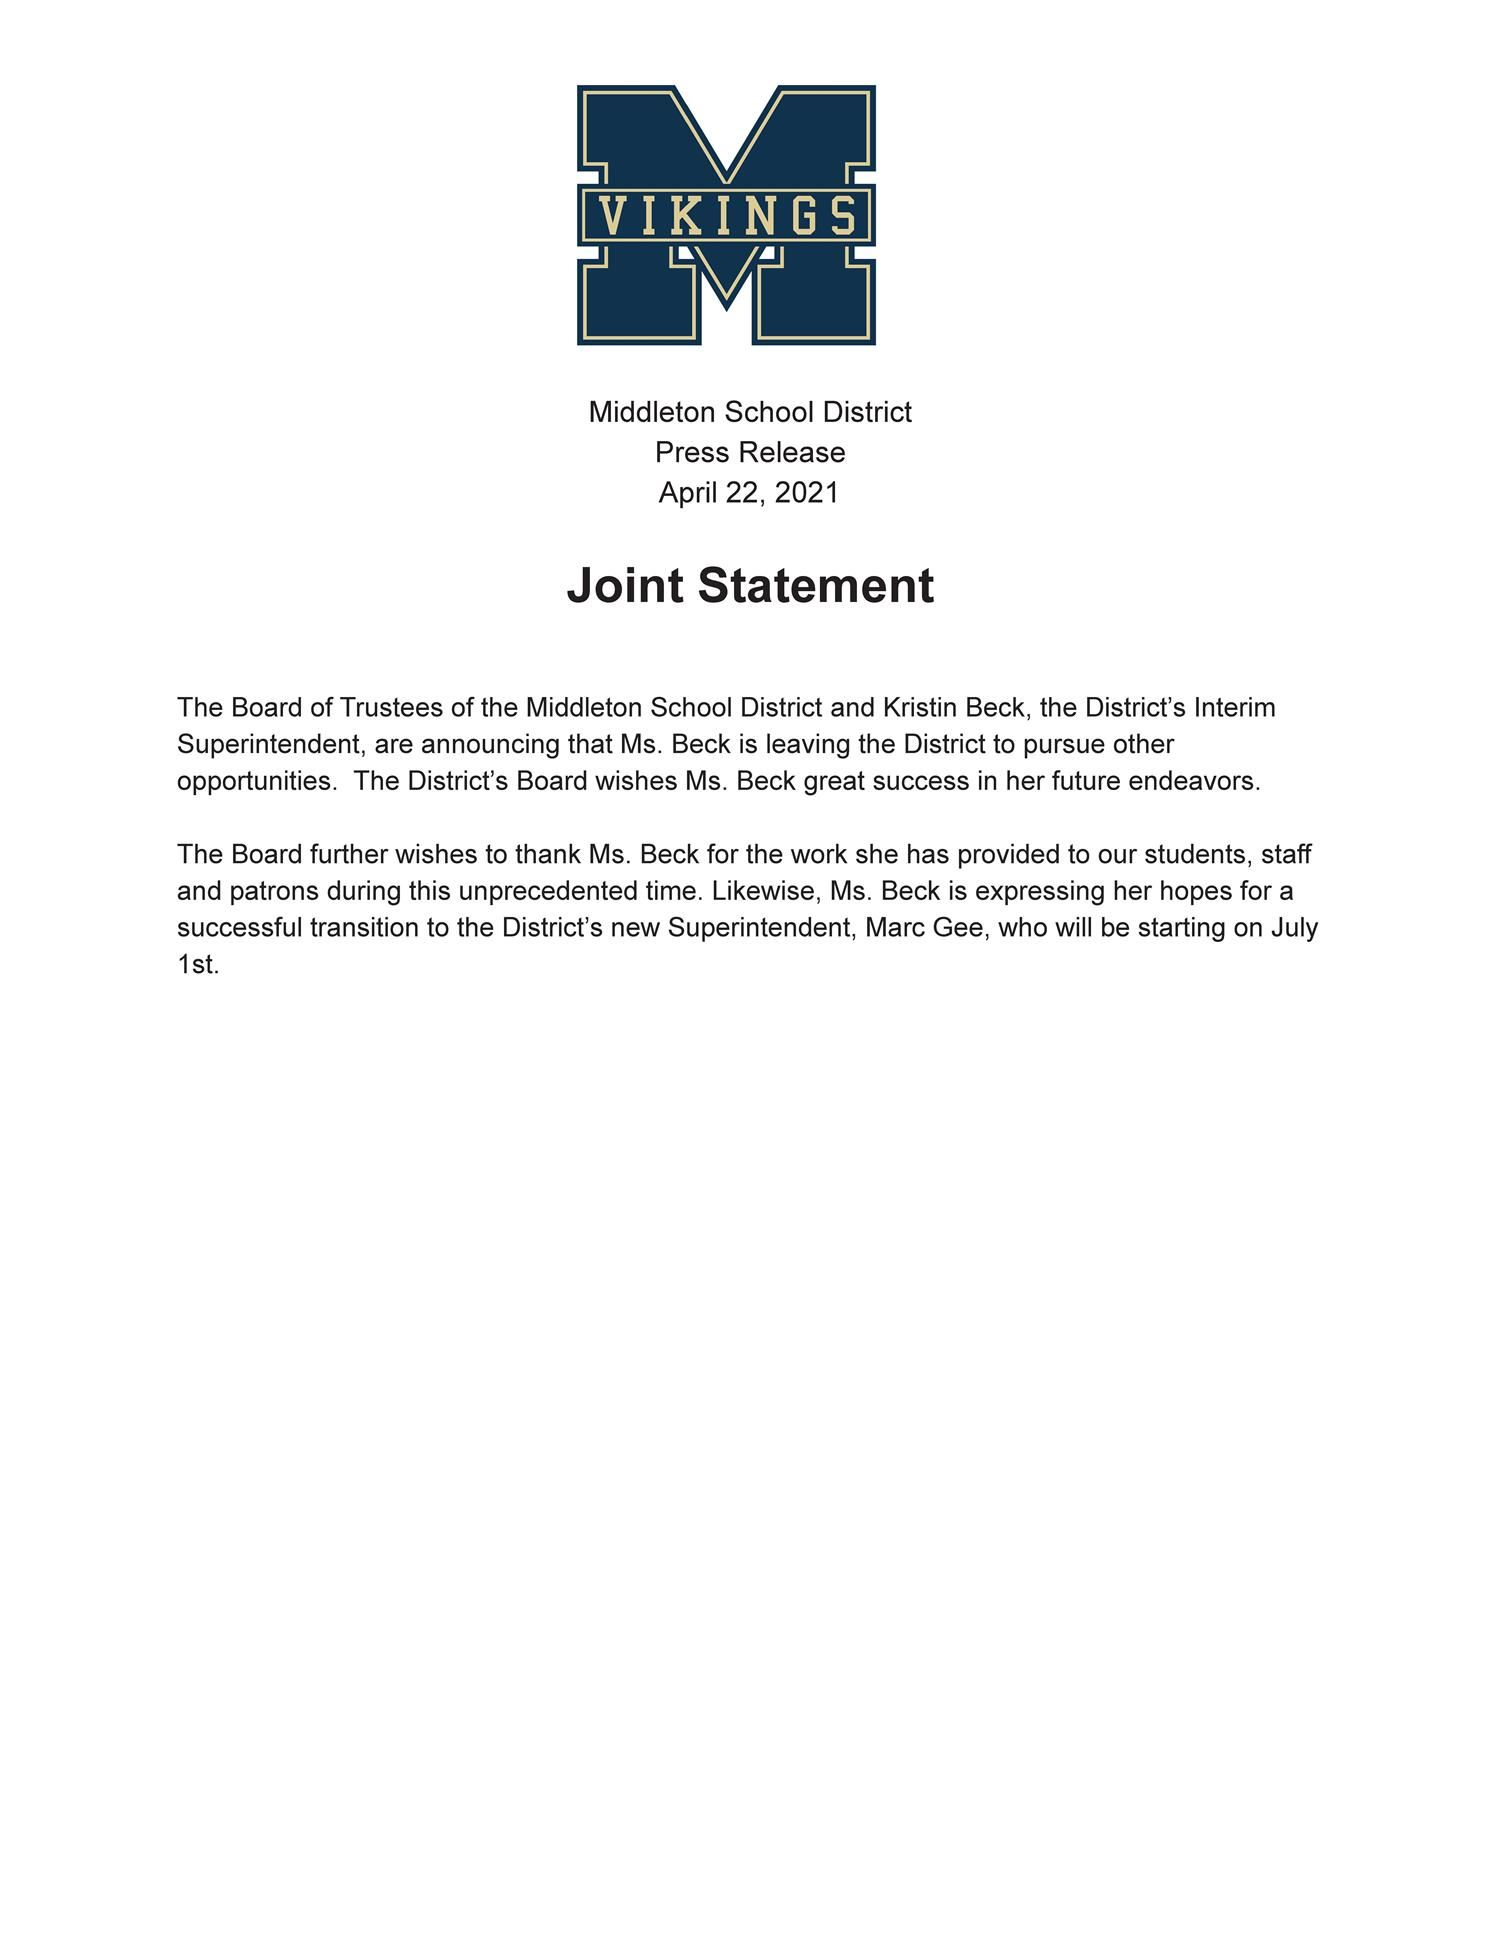 image of the press release with text in this file